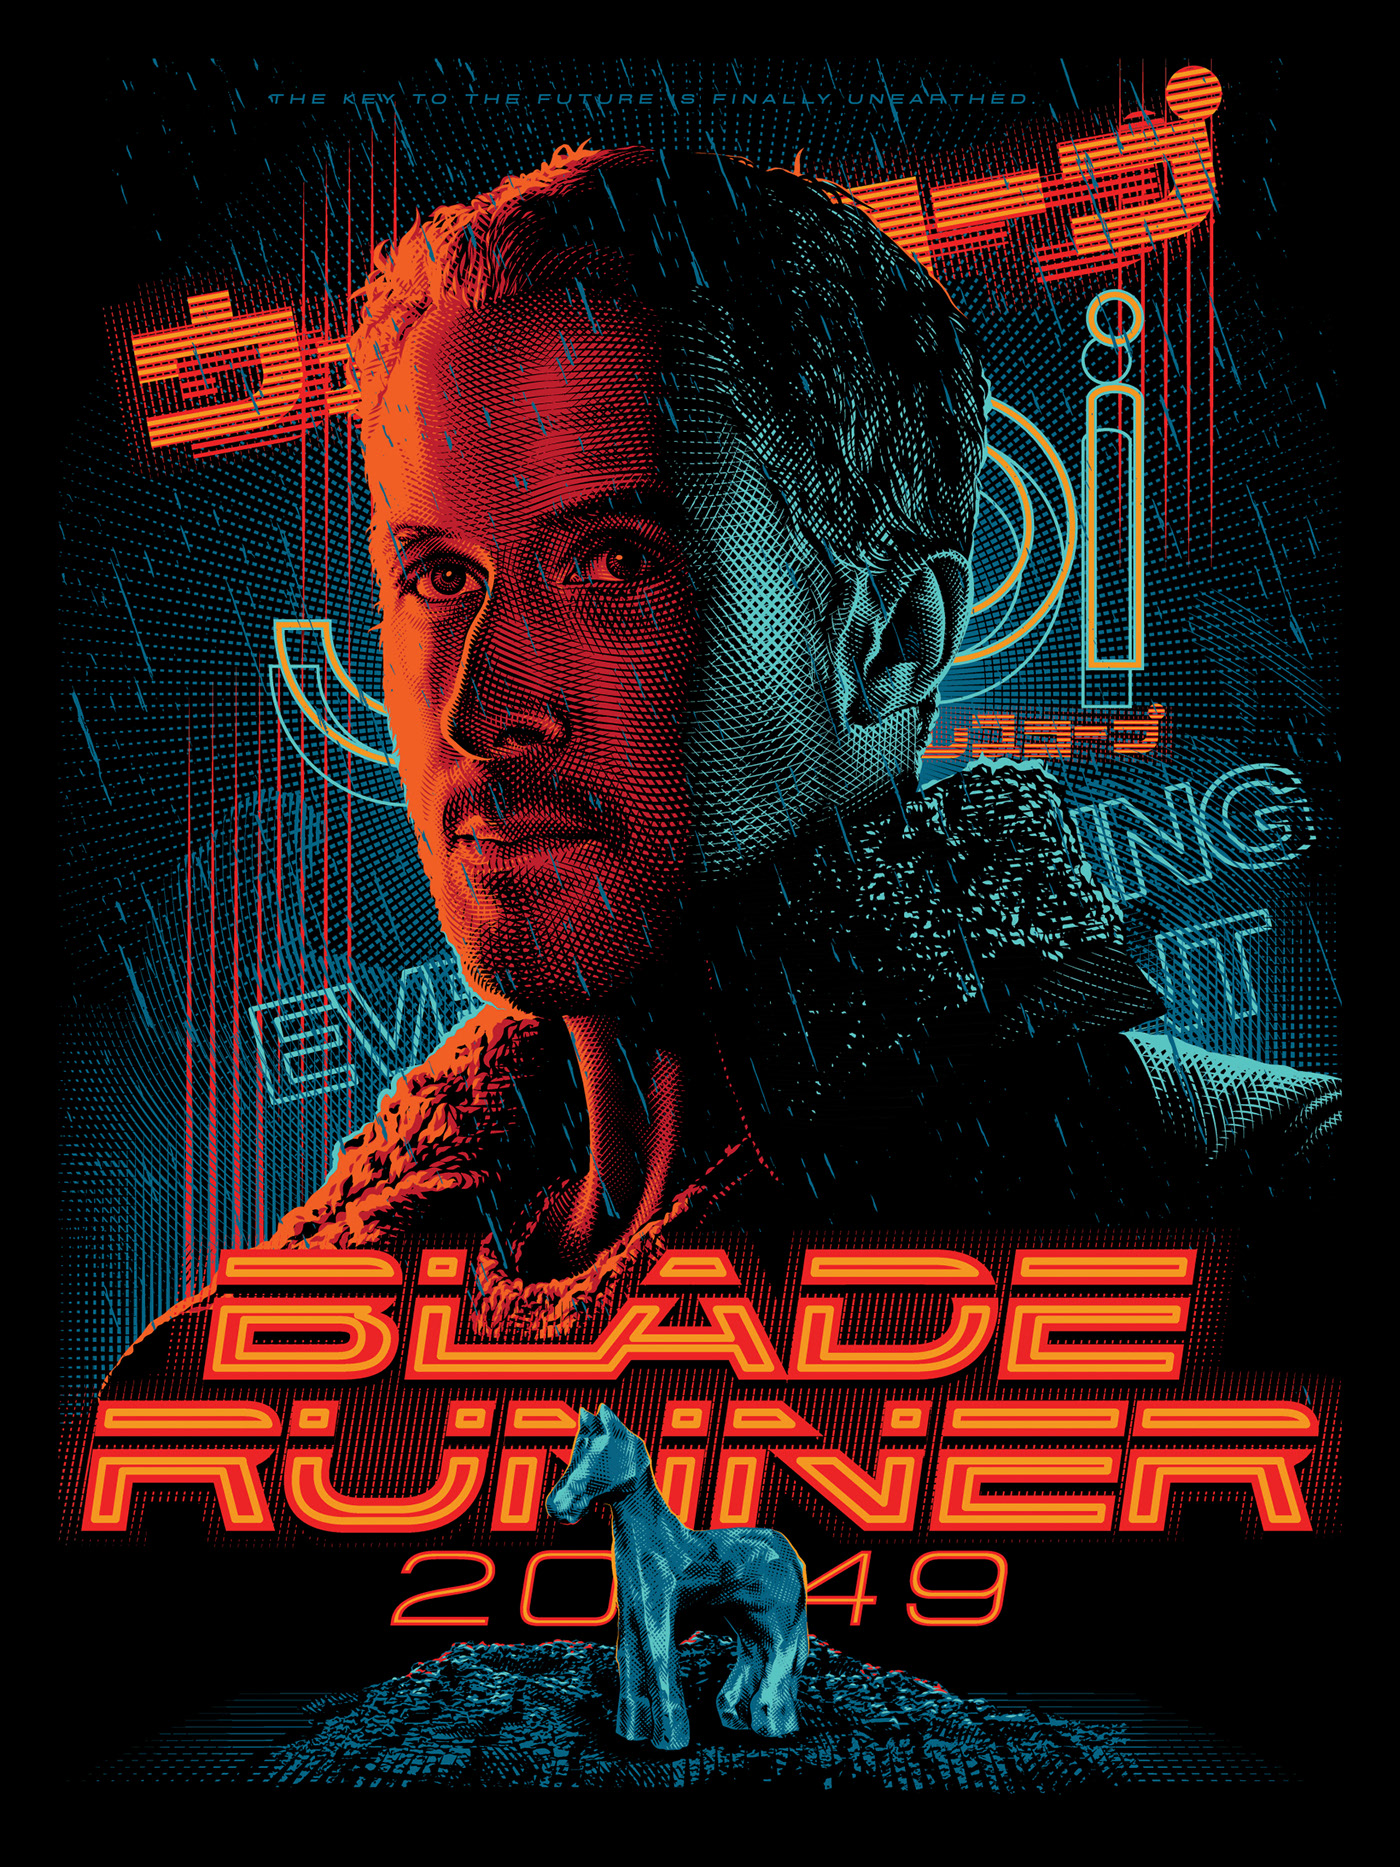 poster design portrait illustration bladerunner